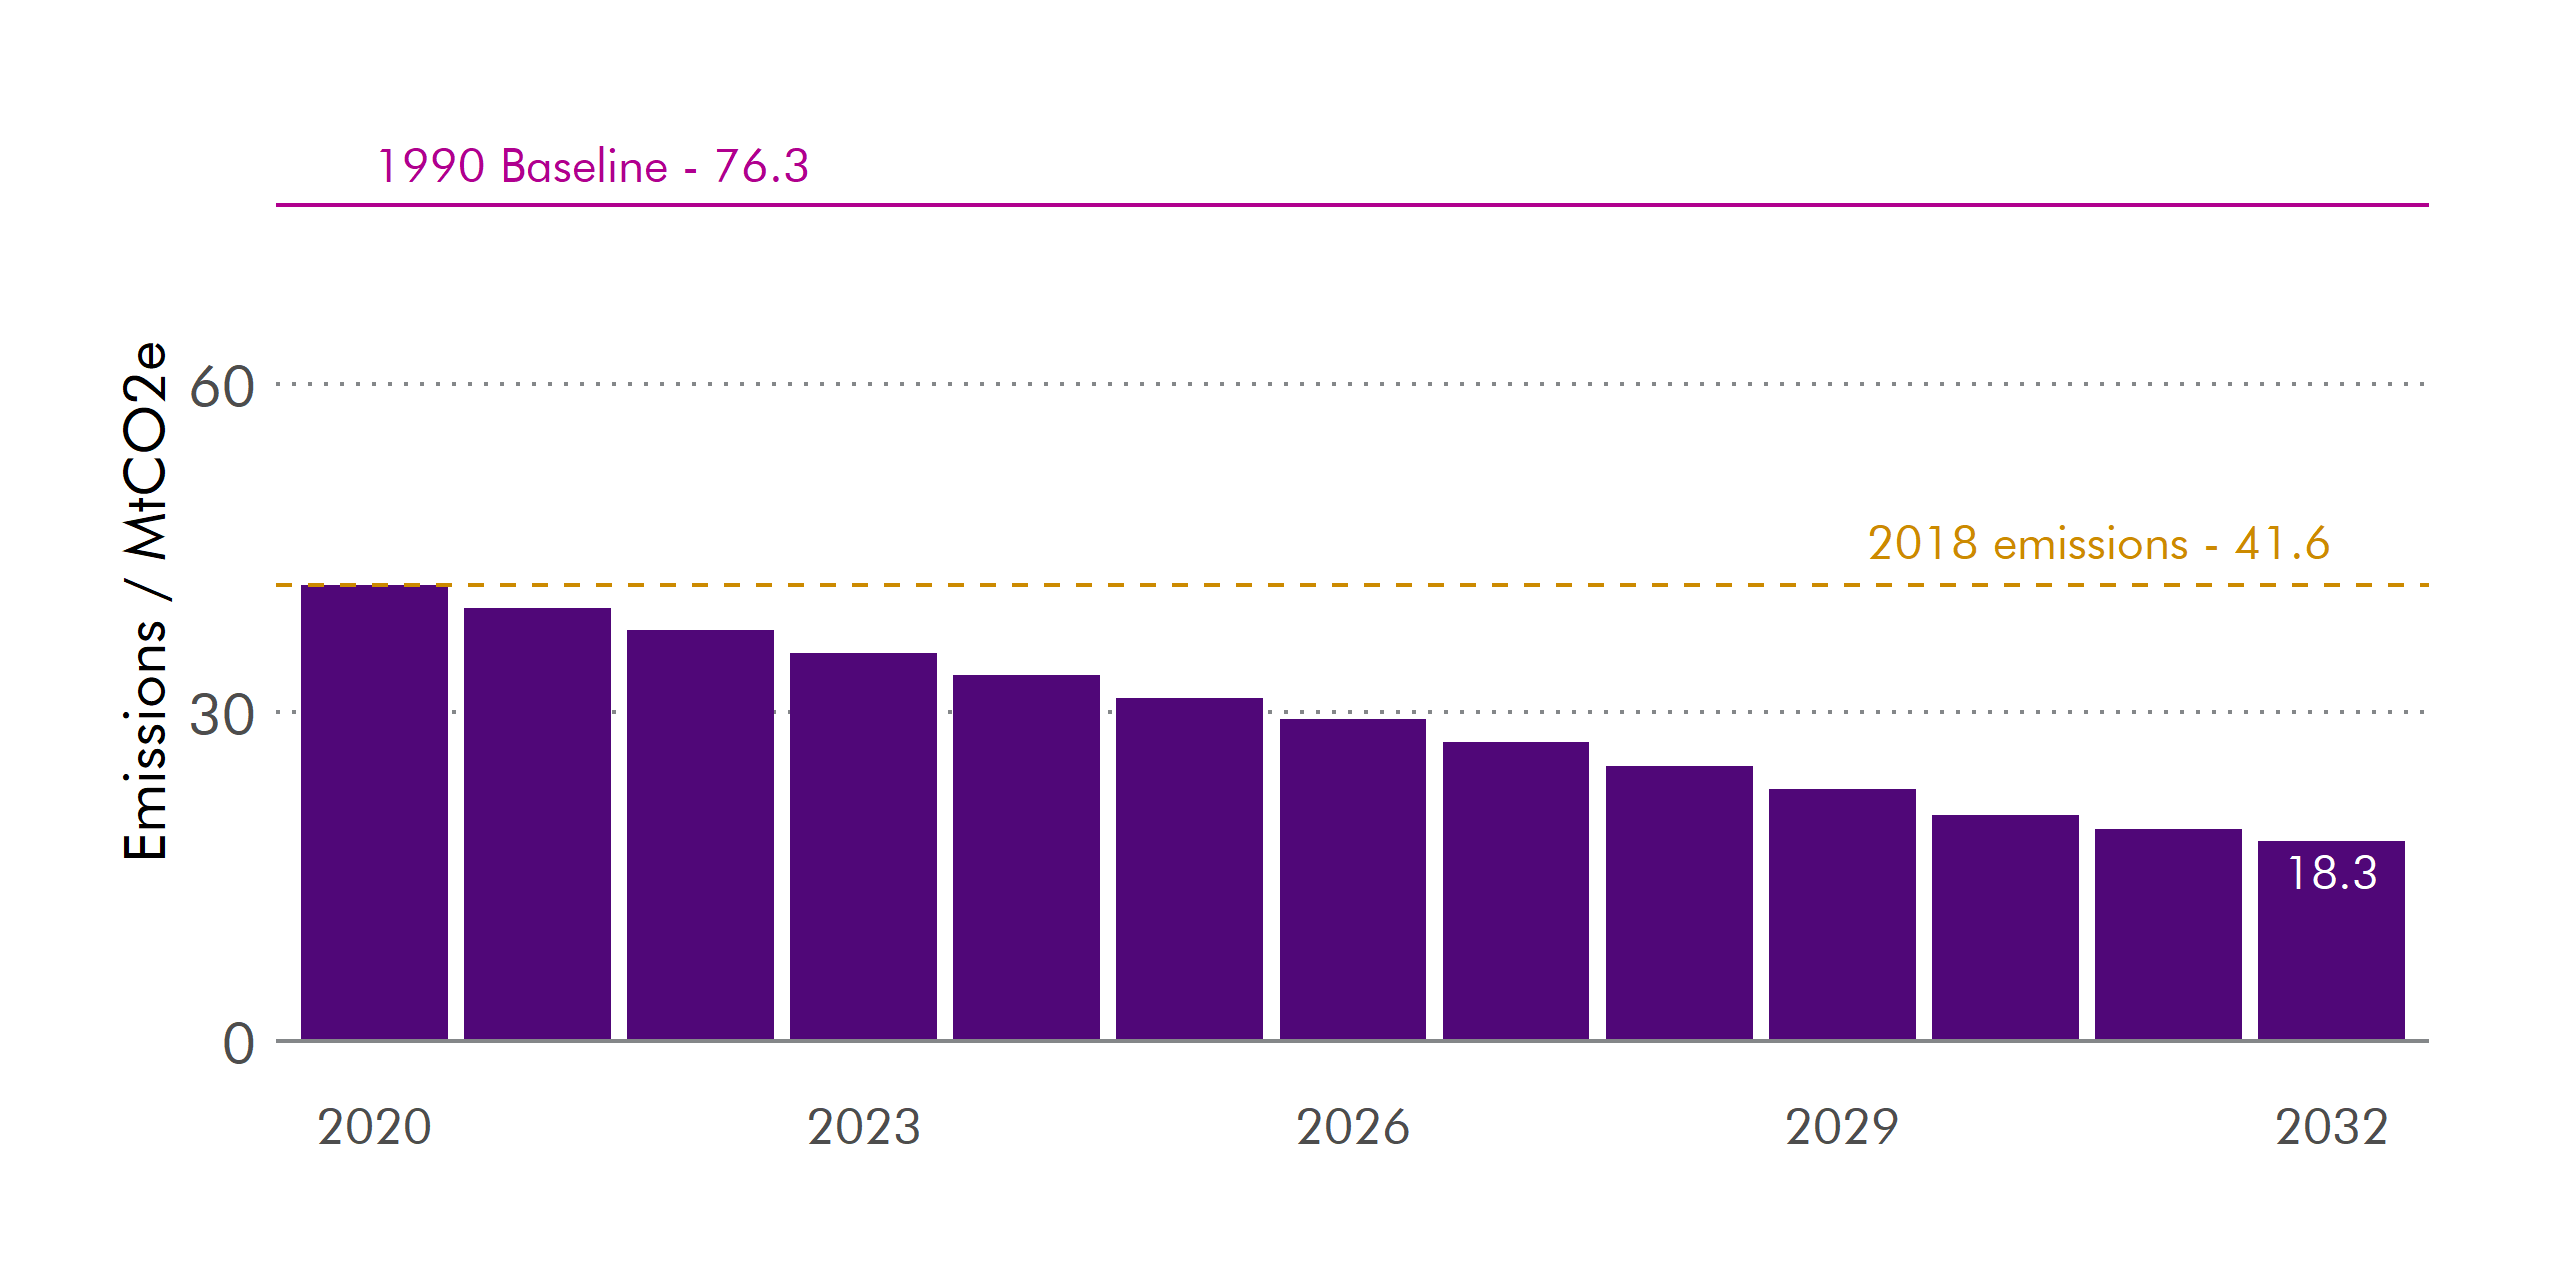 Emissions are expected to more than half between 2020 and 2032, dropping from 41.6 MtCO2e to 18.3MtCO2e.